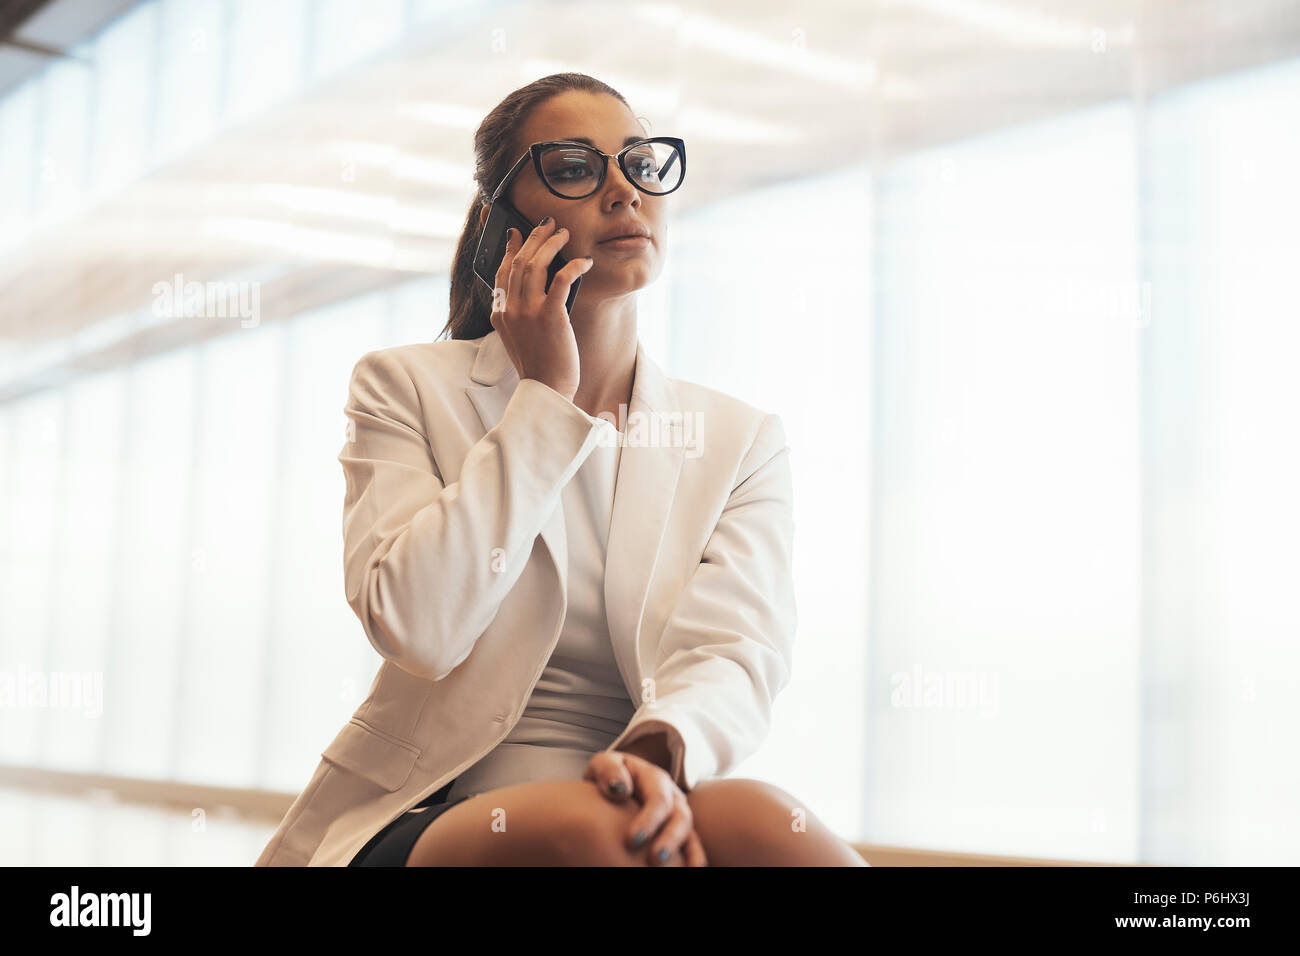 Young business spectacled donna in camicia bianca parla al telefono cellulare. Immagini Stock